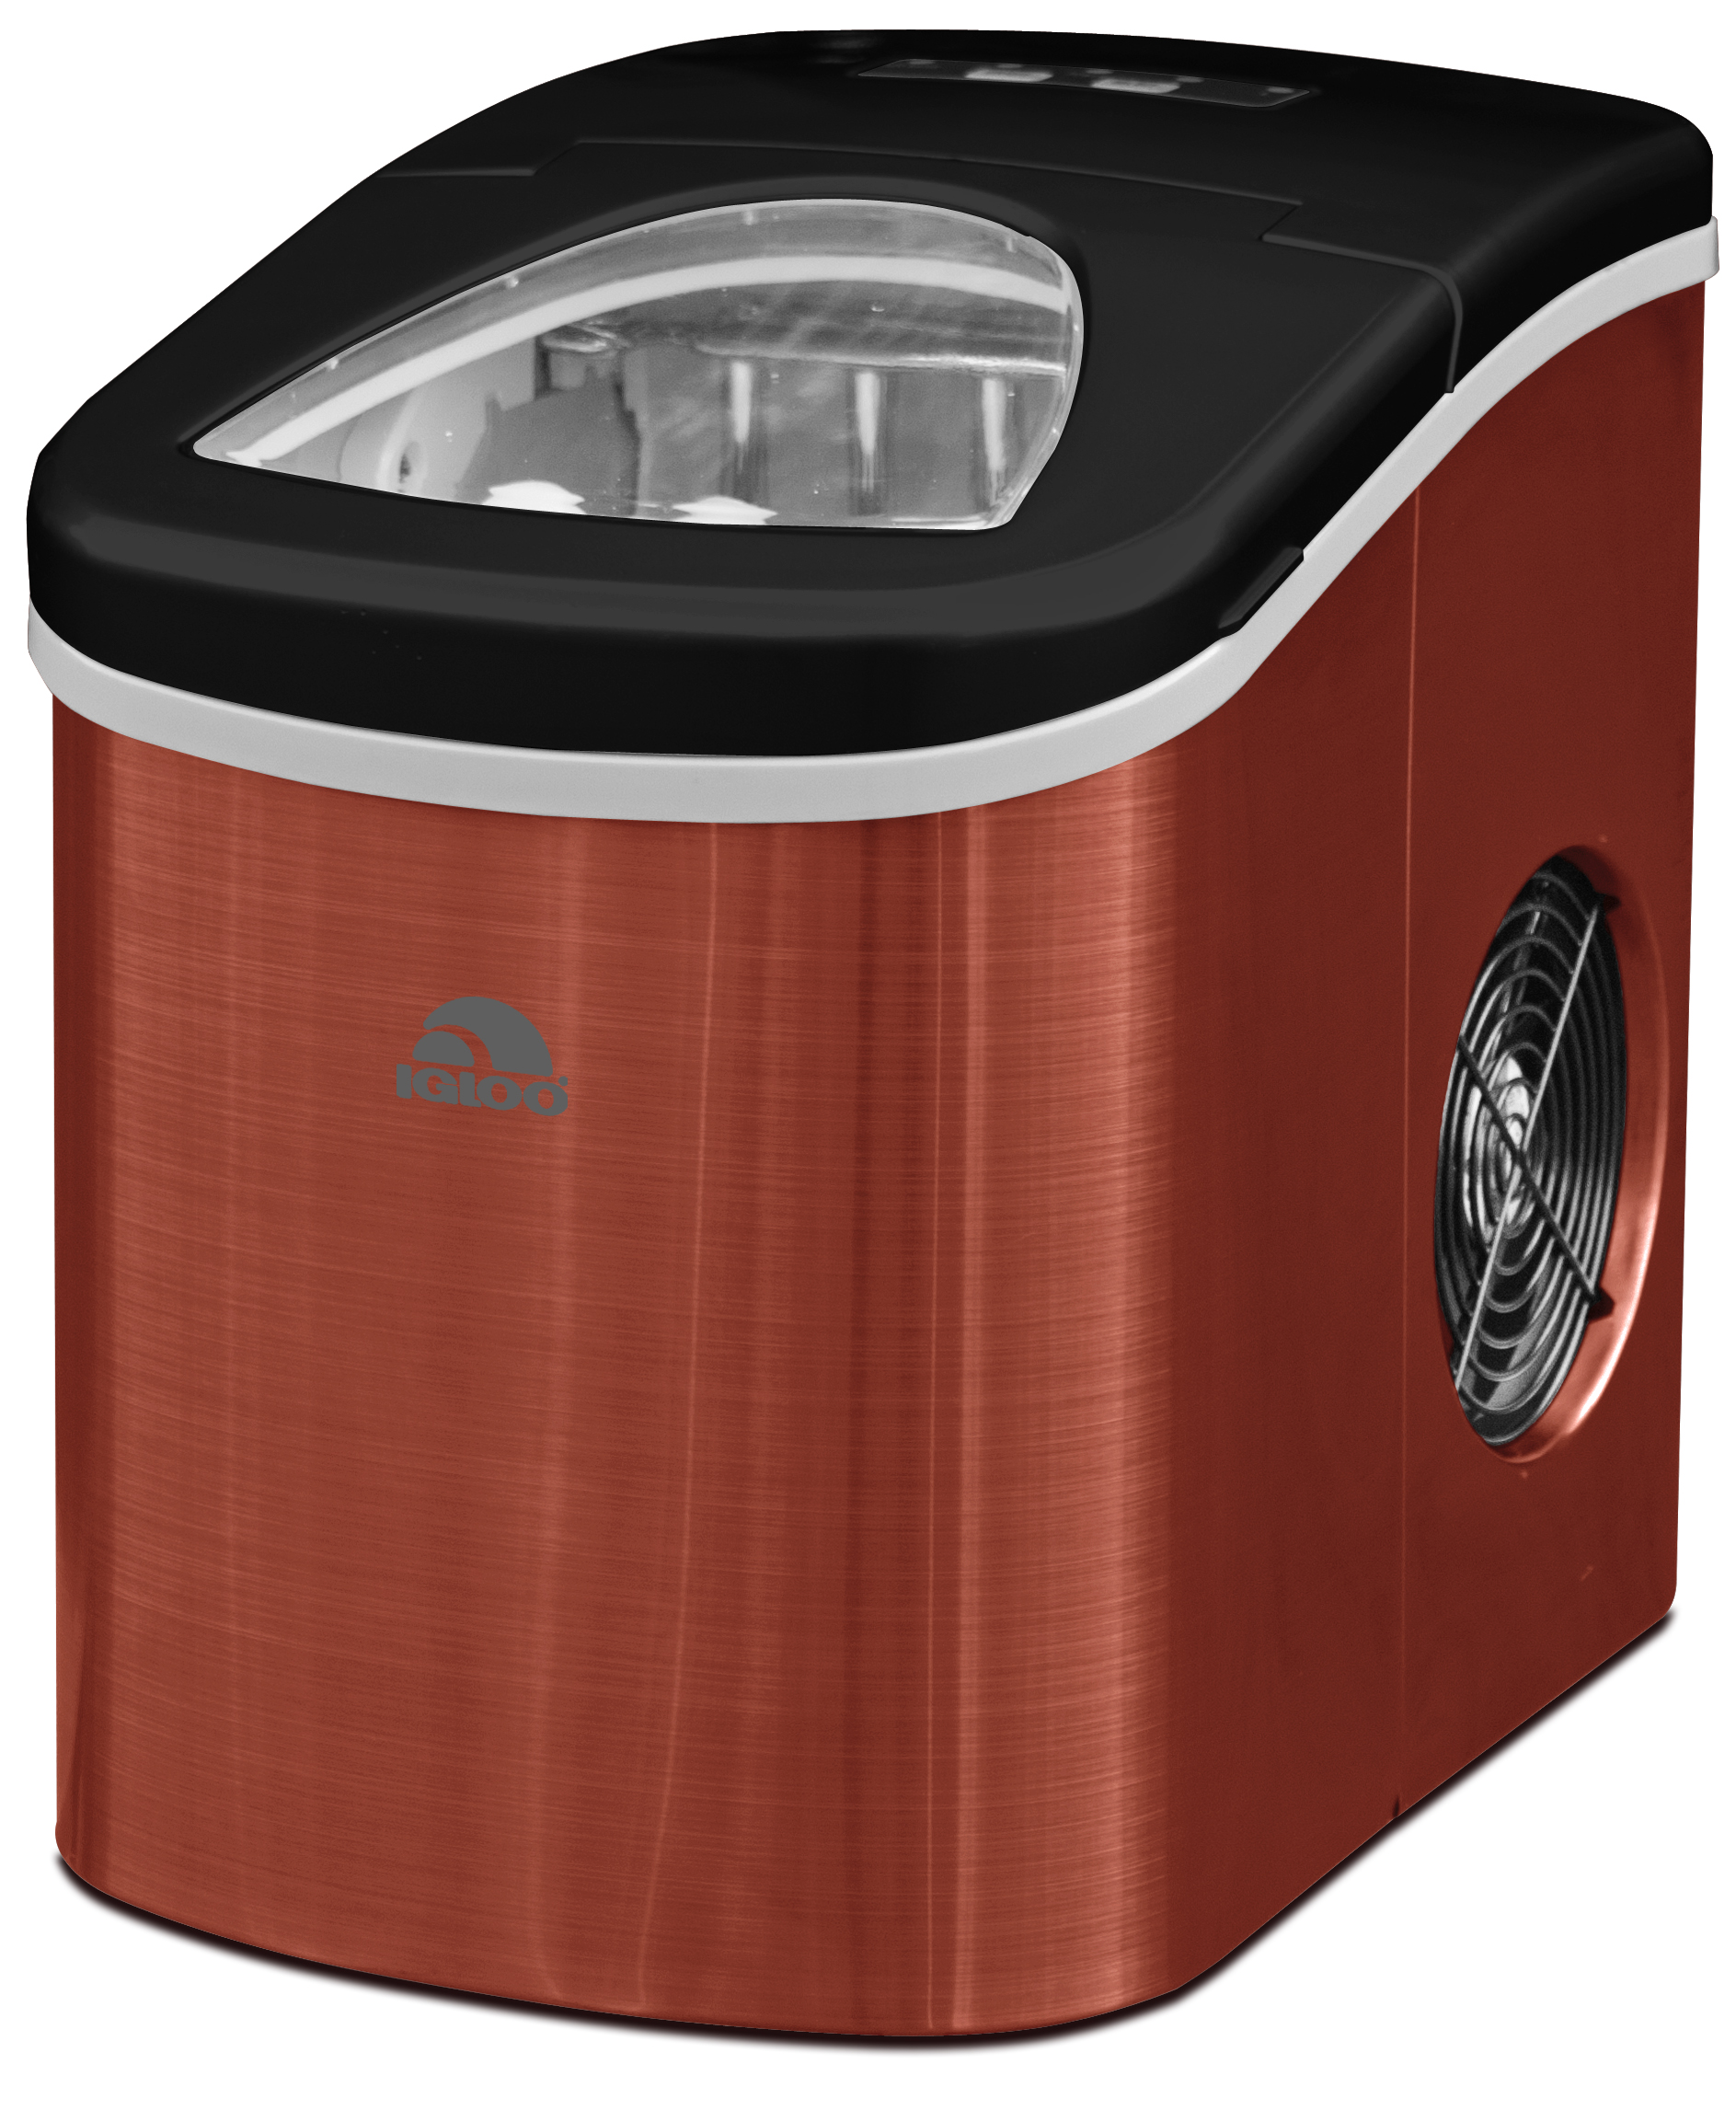 Igloo Ice Maker Red Stainless Steel by CURTIS INTERNATIONAL LTD